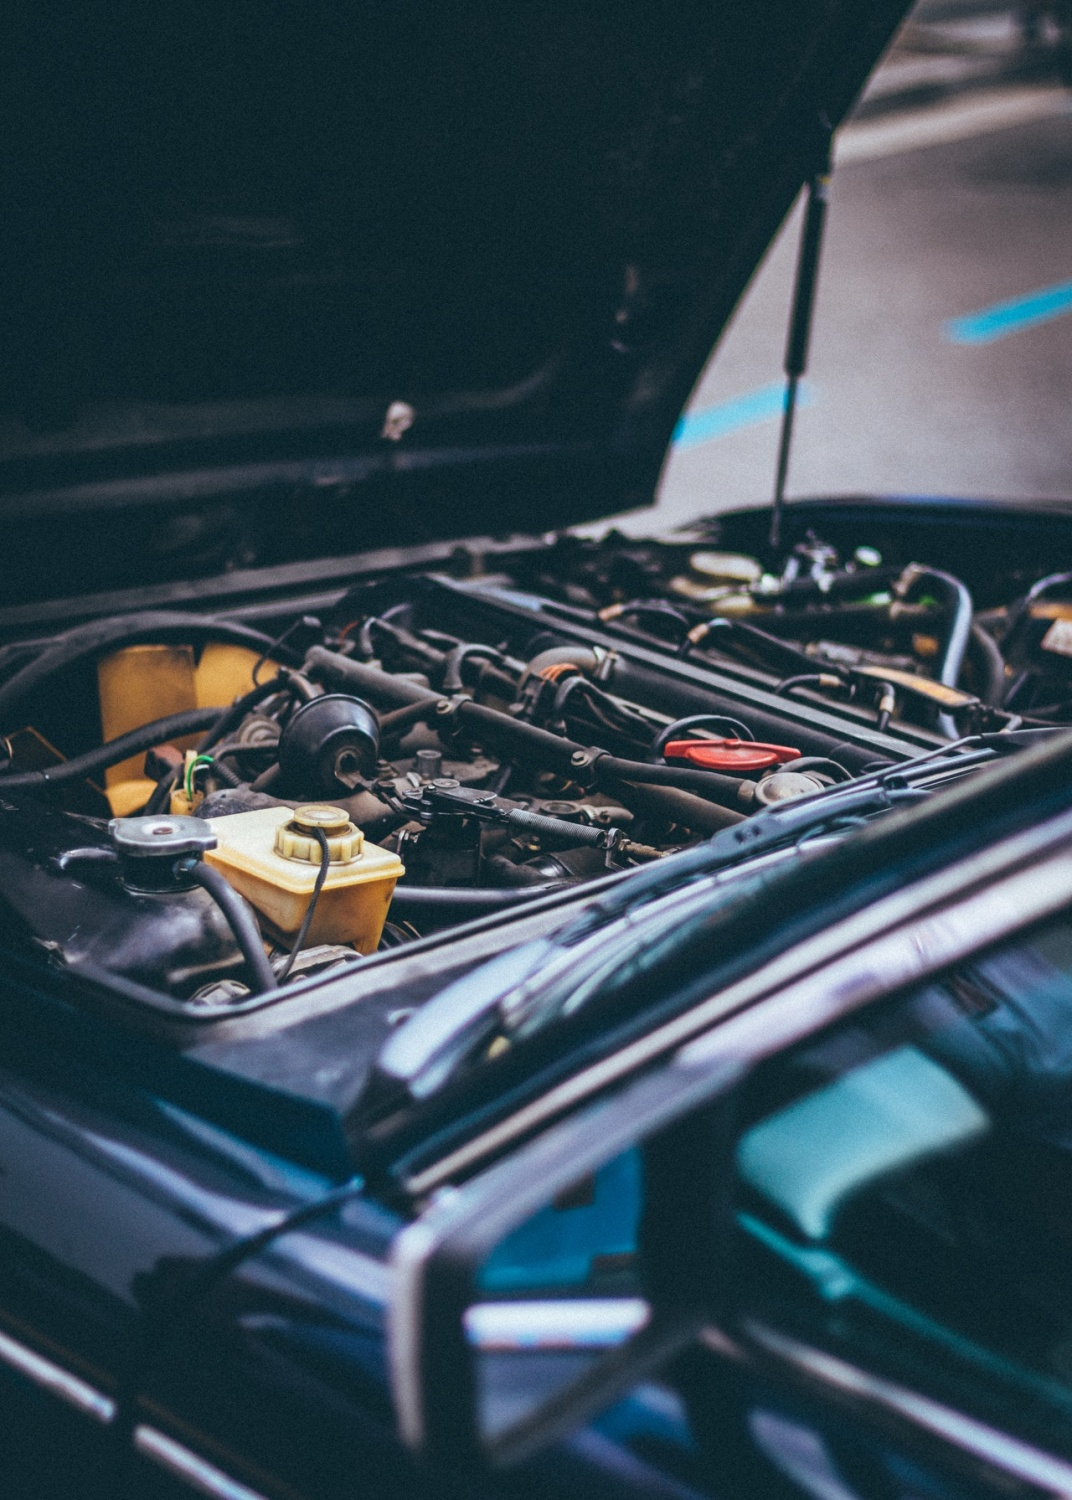 Want To Prepare Your Car for Resale? Read This!